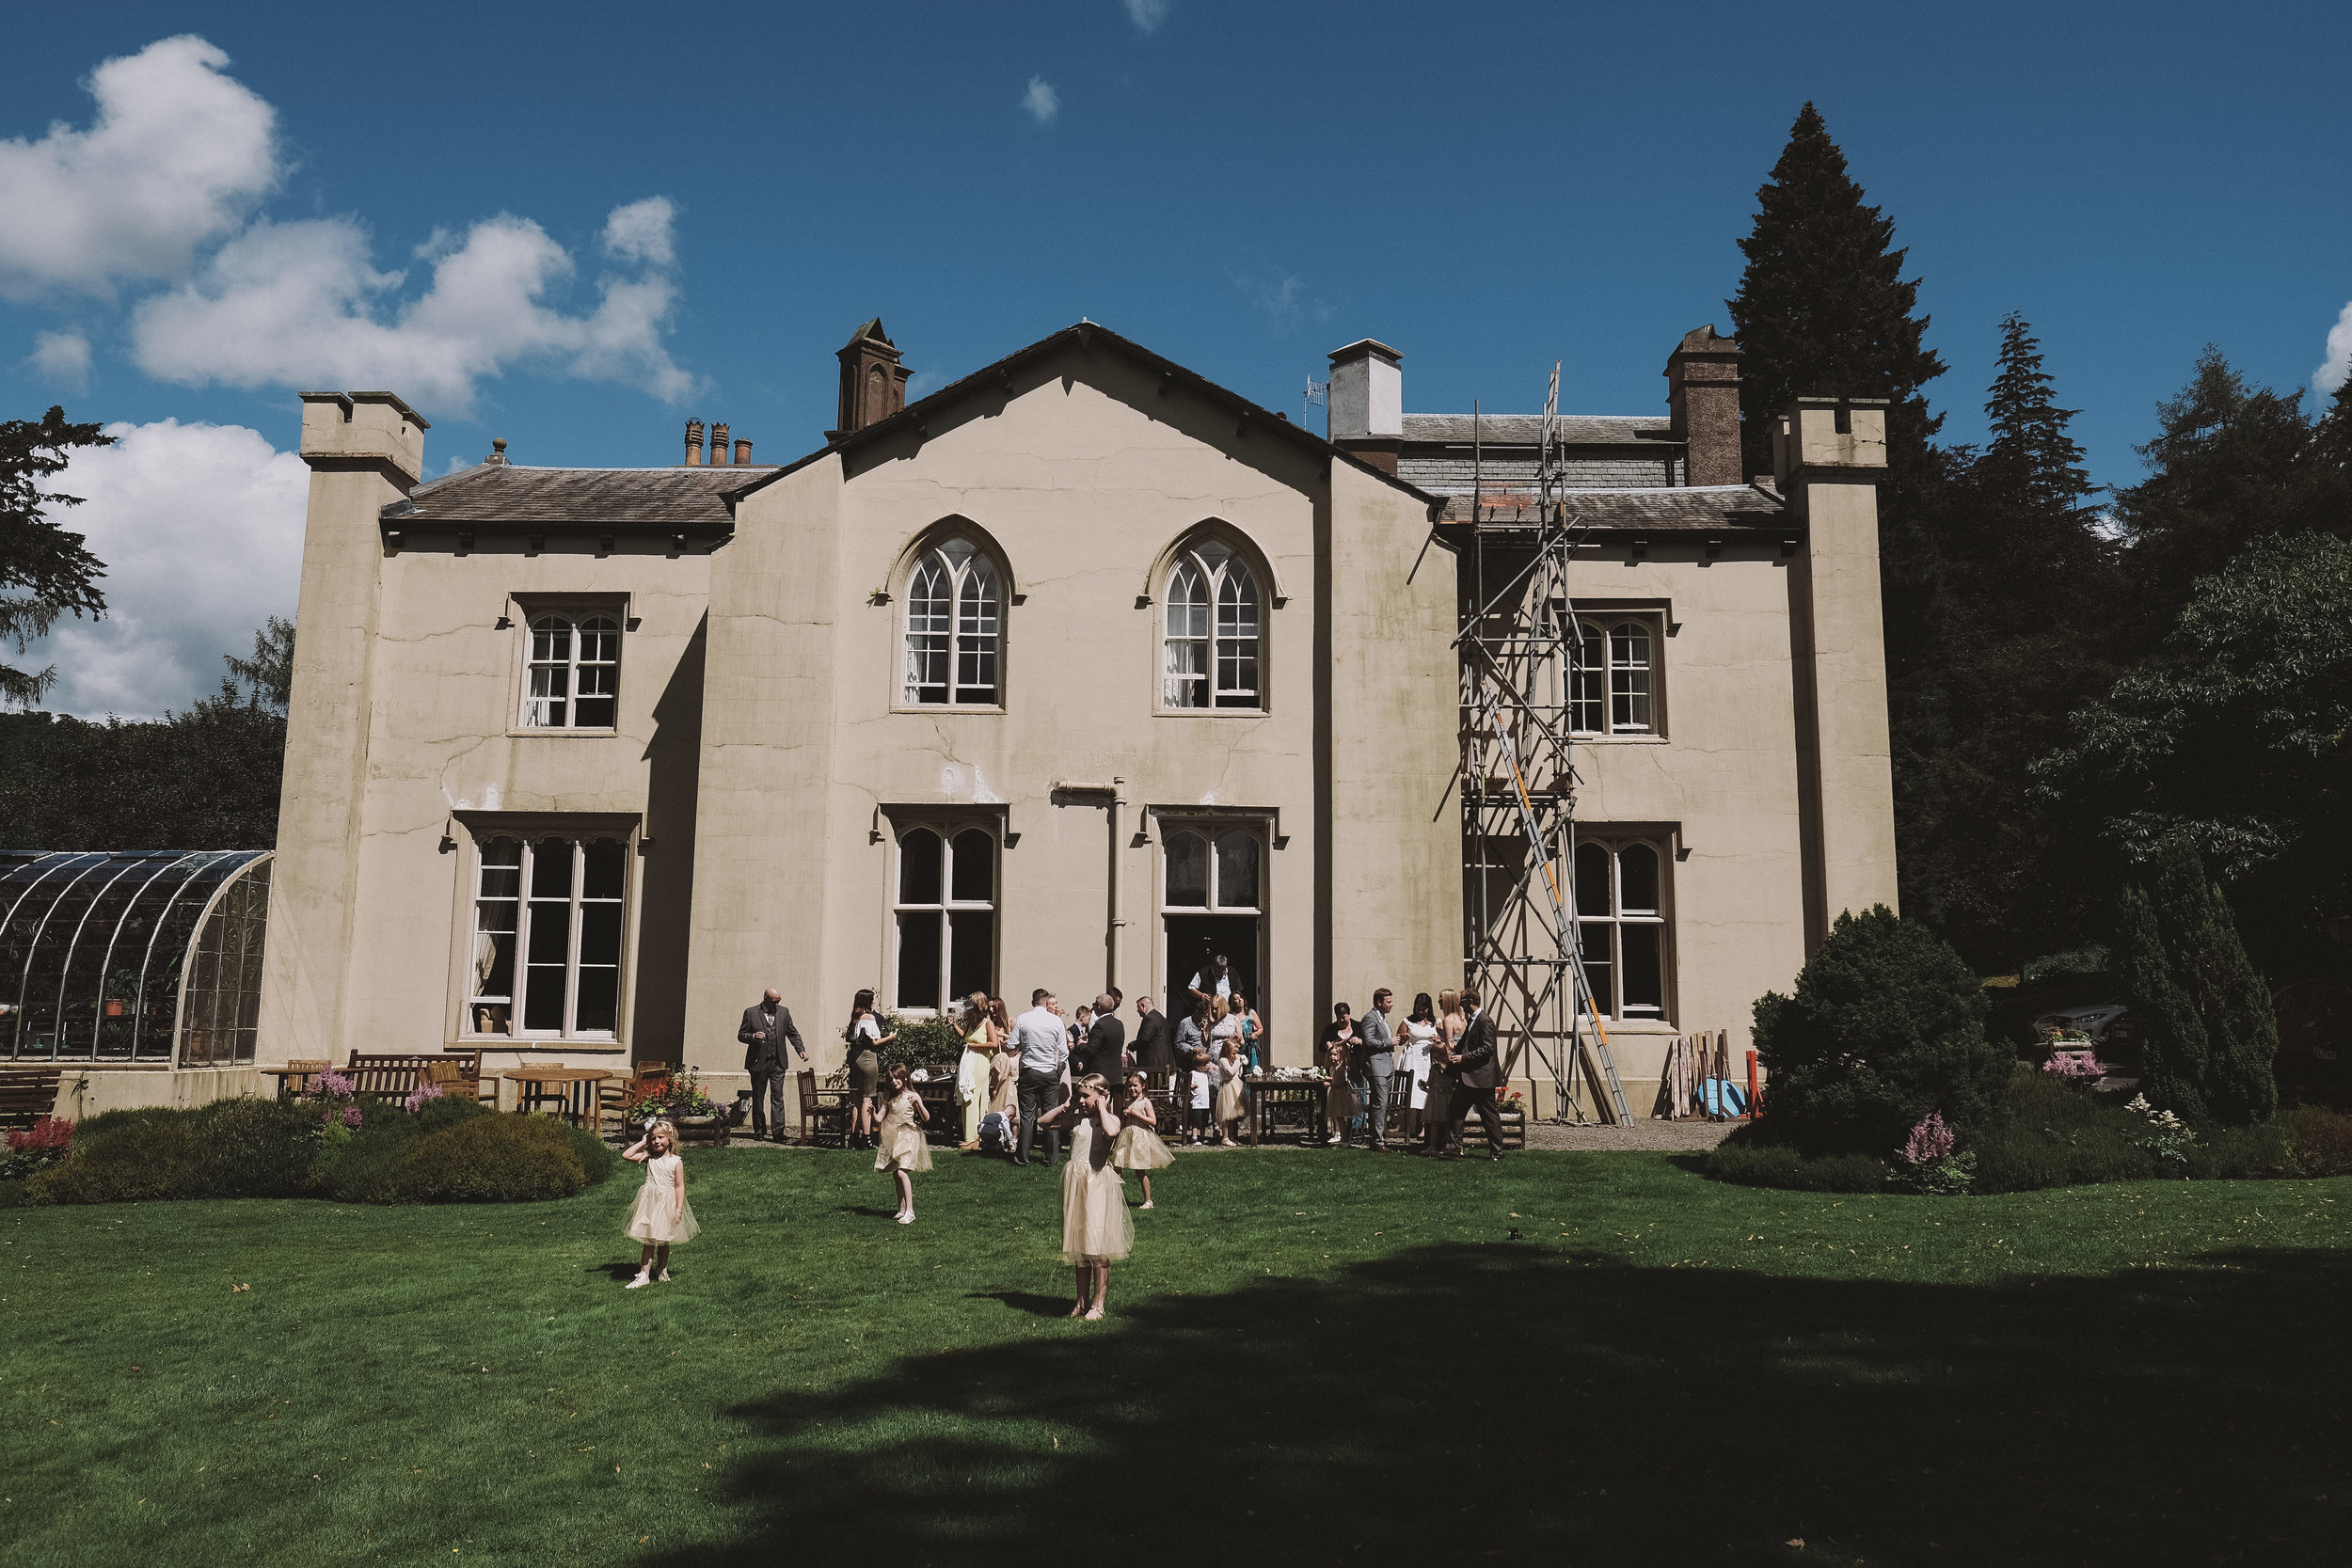 Children play on the grass outside Monk Coniston Hall at Julia and Darren's Lake District wedding by Barry Forshaw